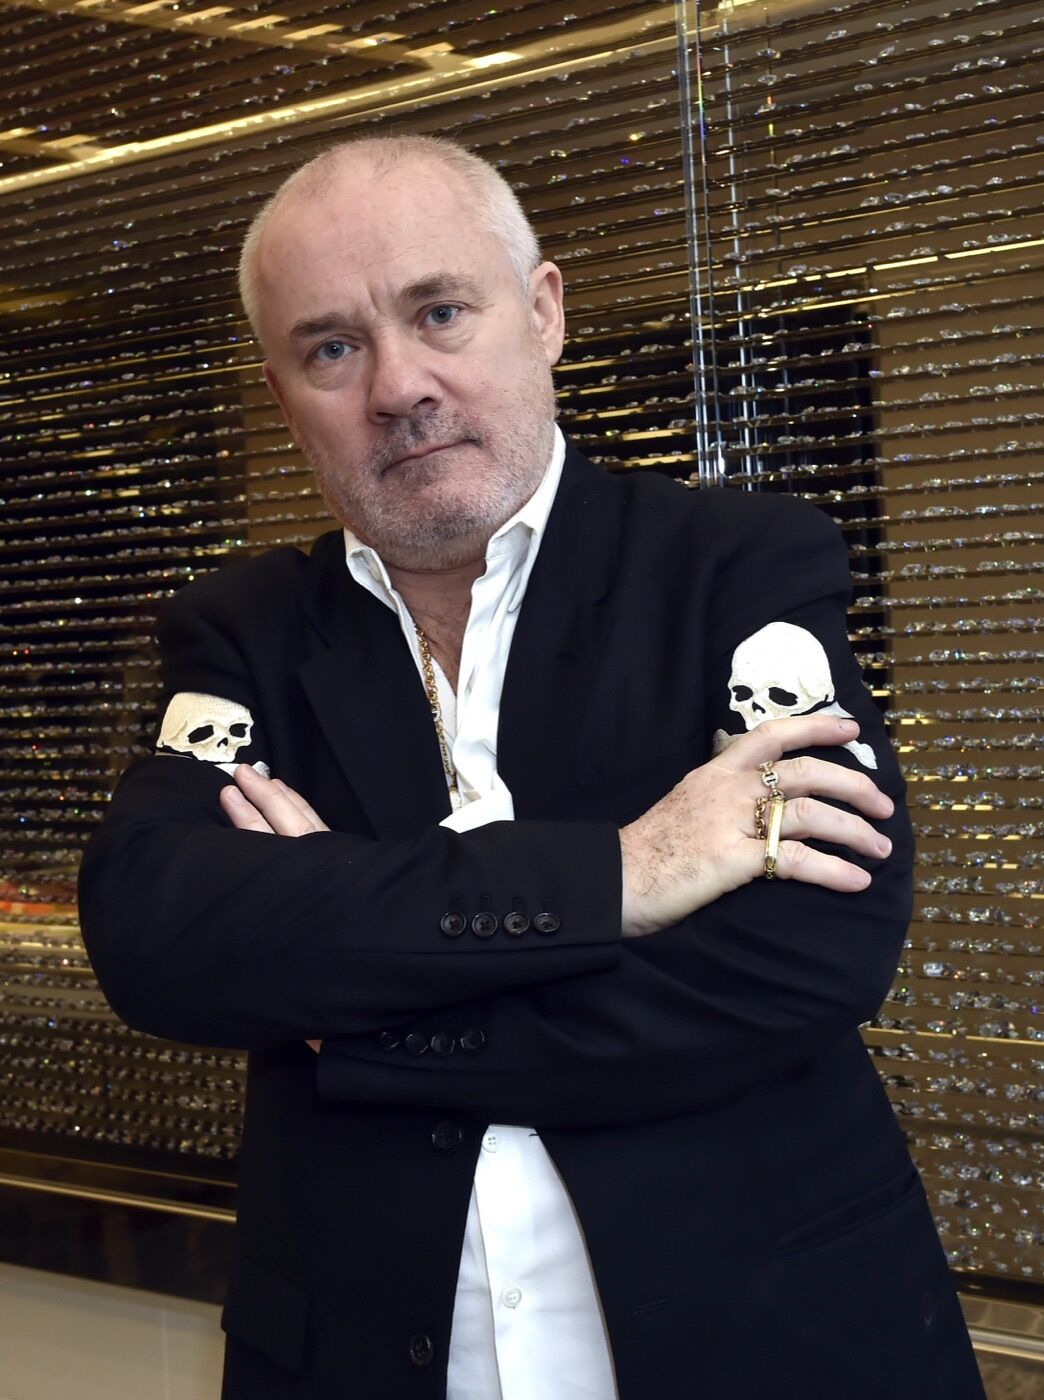 Portrait of Damien Hirst in front of his work The Winner Takes It All, 2018 in the Empathy Suite at Palms Casino Resort, Las Vegas. Image courtesy of Palms Casino Resort.